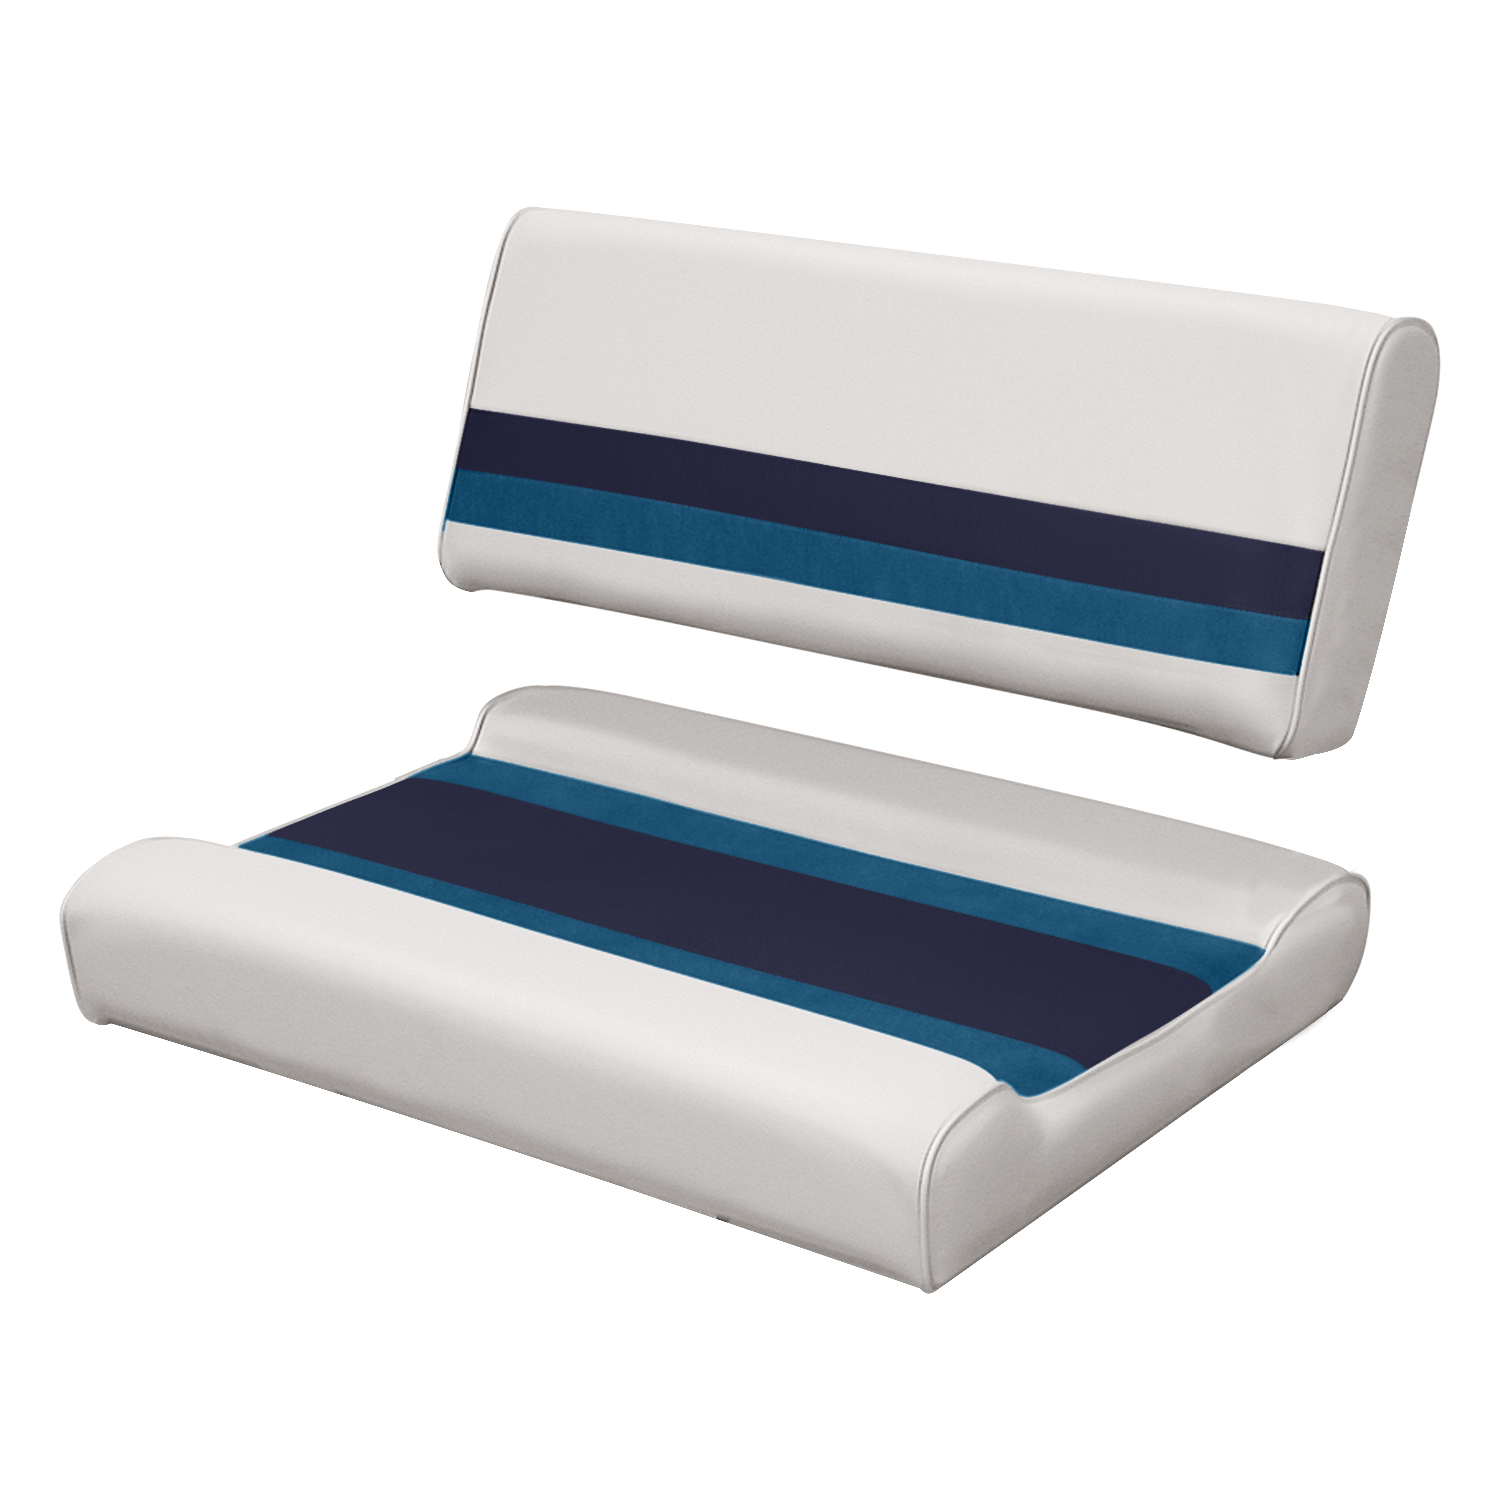 "Wise 8WD125FF-1008 Deluxe Series Pontoon 32"" Flip Flop Bench Seat and Backrest Cushion Set, White/Navy/Blue"